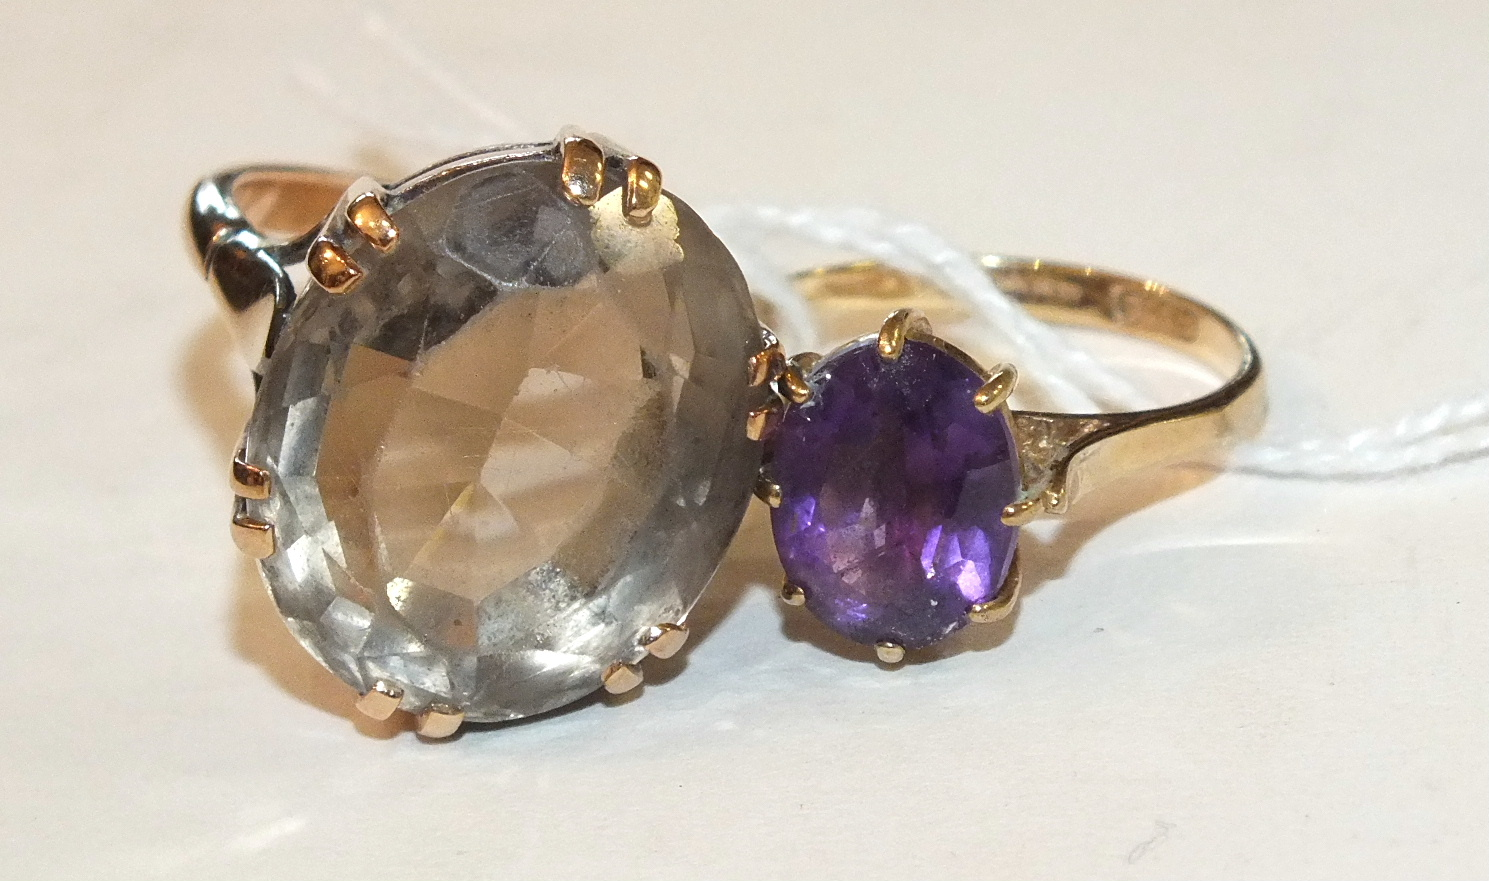 Lot 217 - An amethyst ring in 9ct gold mount, size L, 2g and a large 9ct gold ring set smokey quartz, size